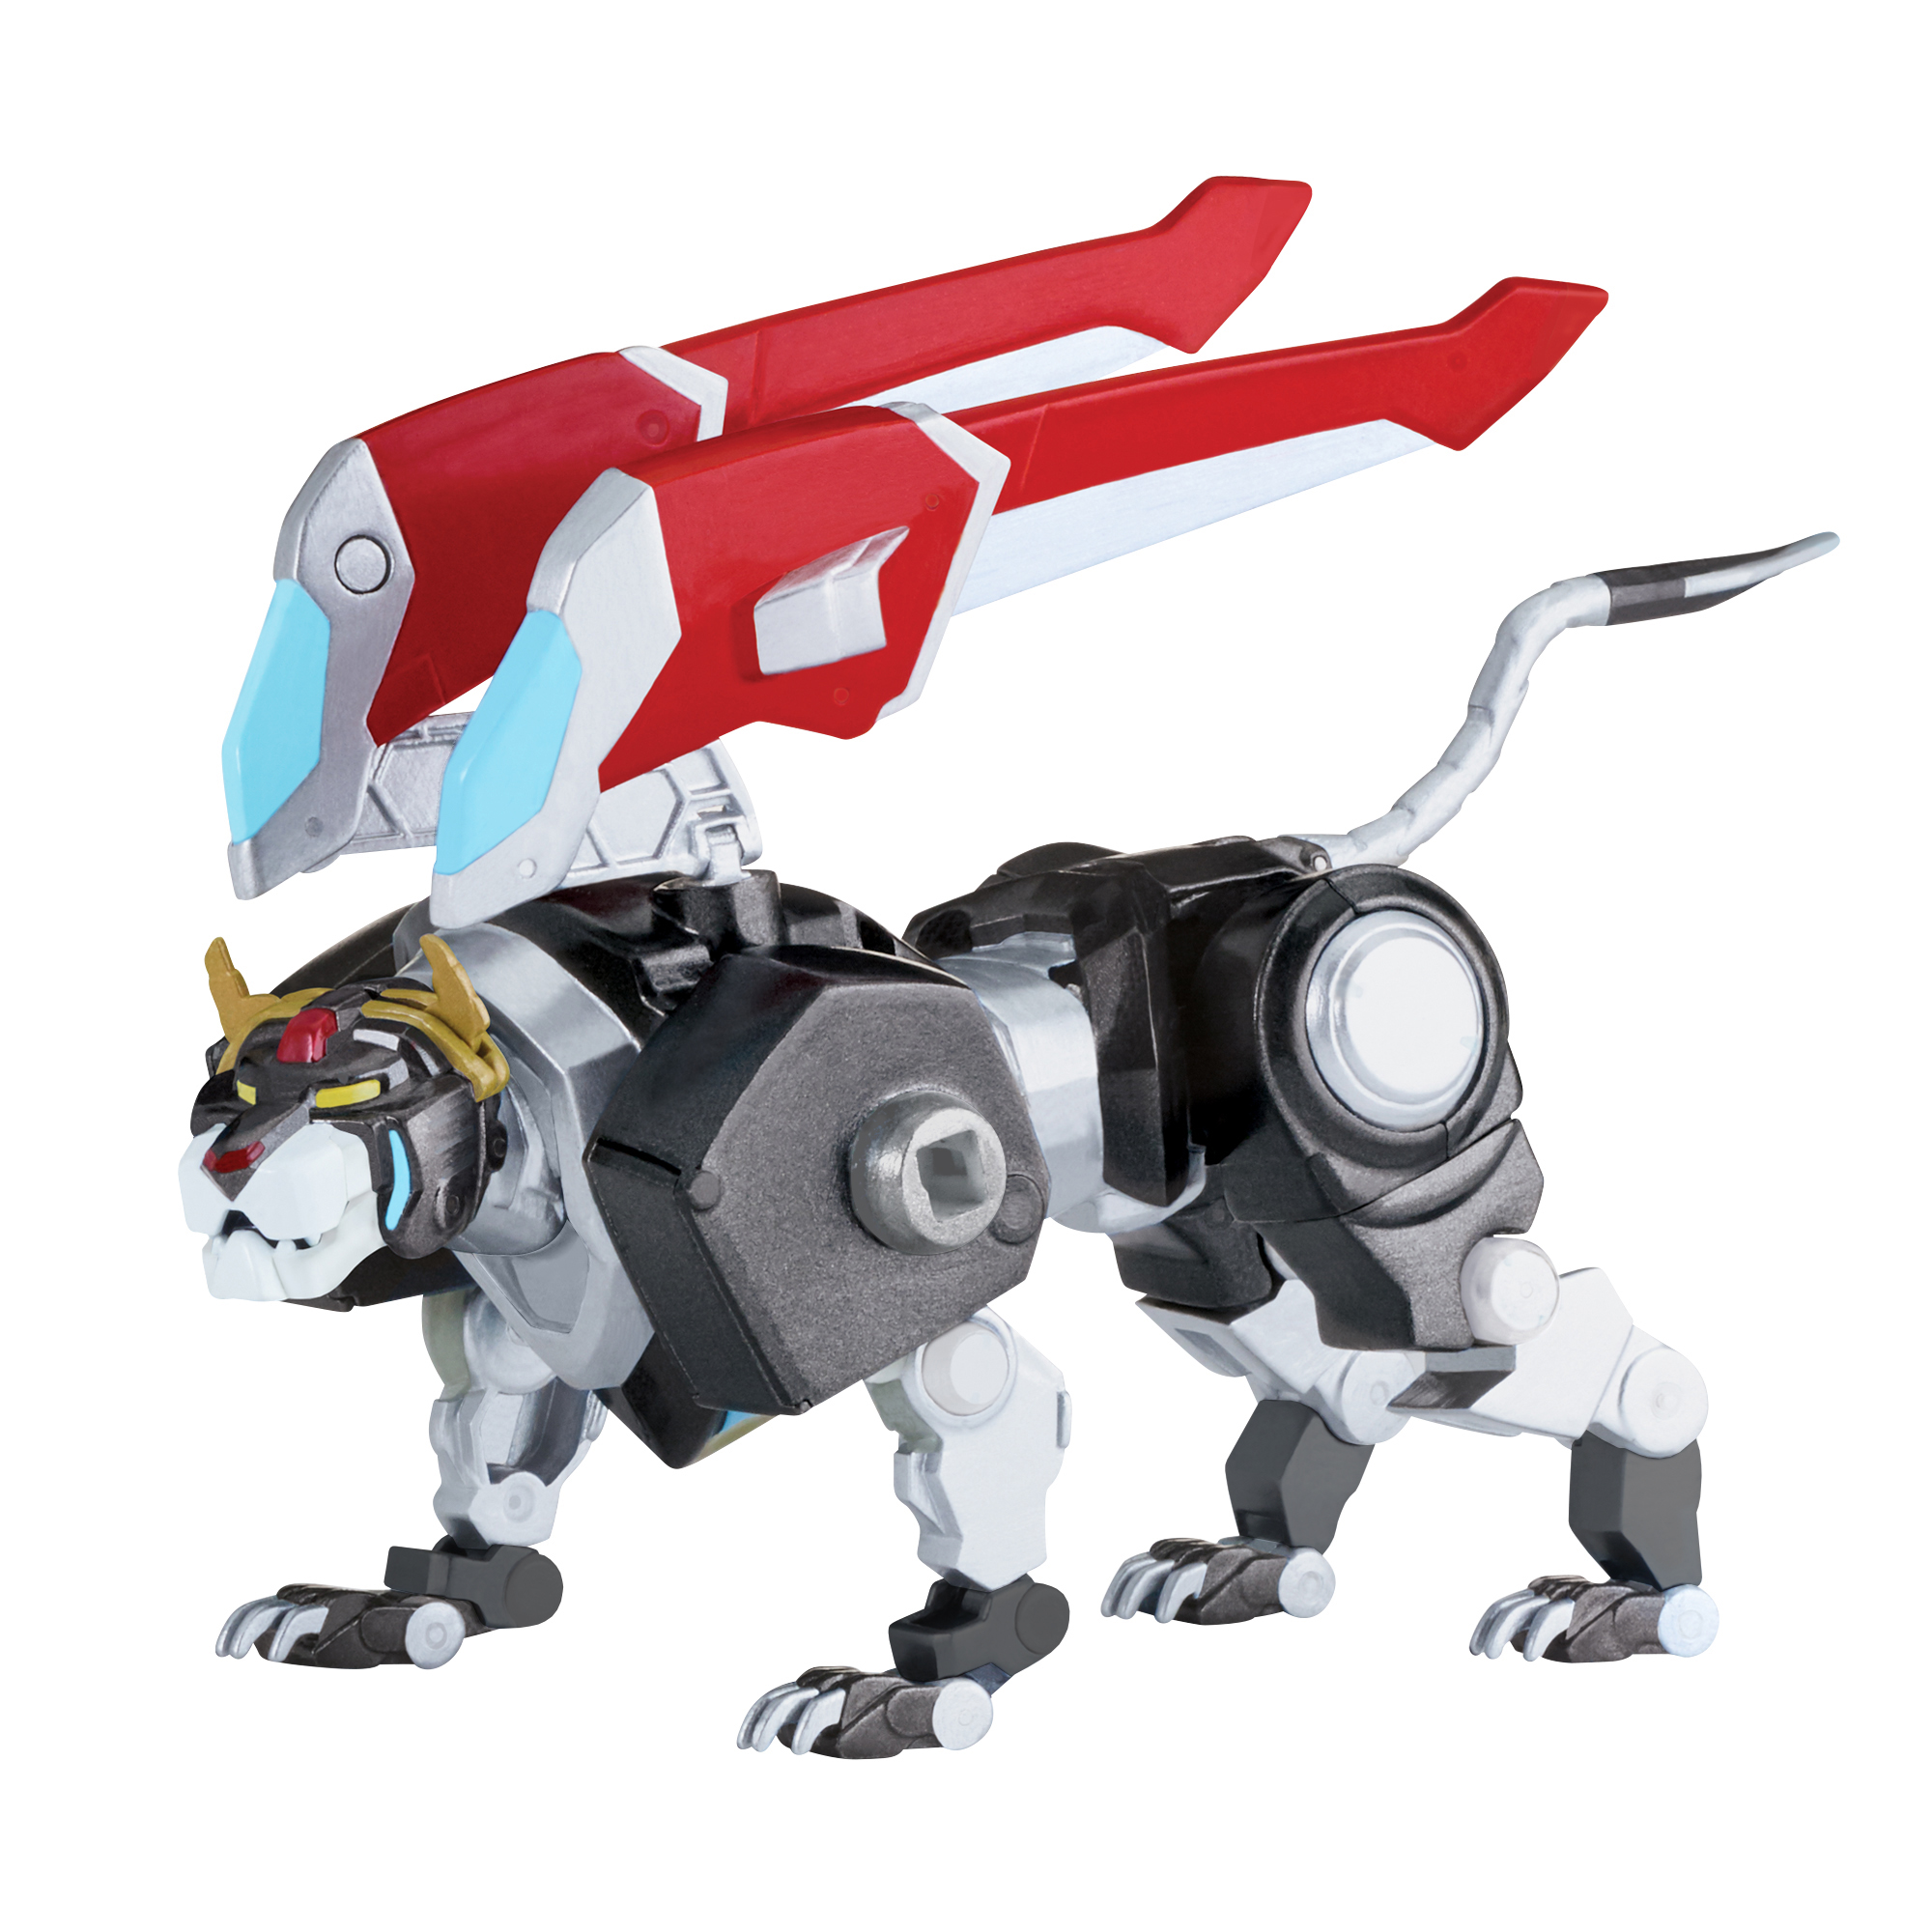 Voltron Die Cast Black Lion by Playmates Toys Inc.